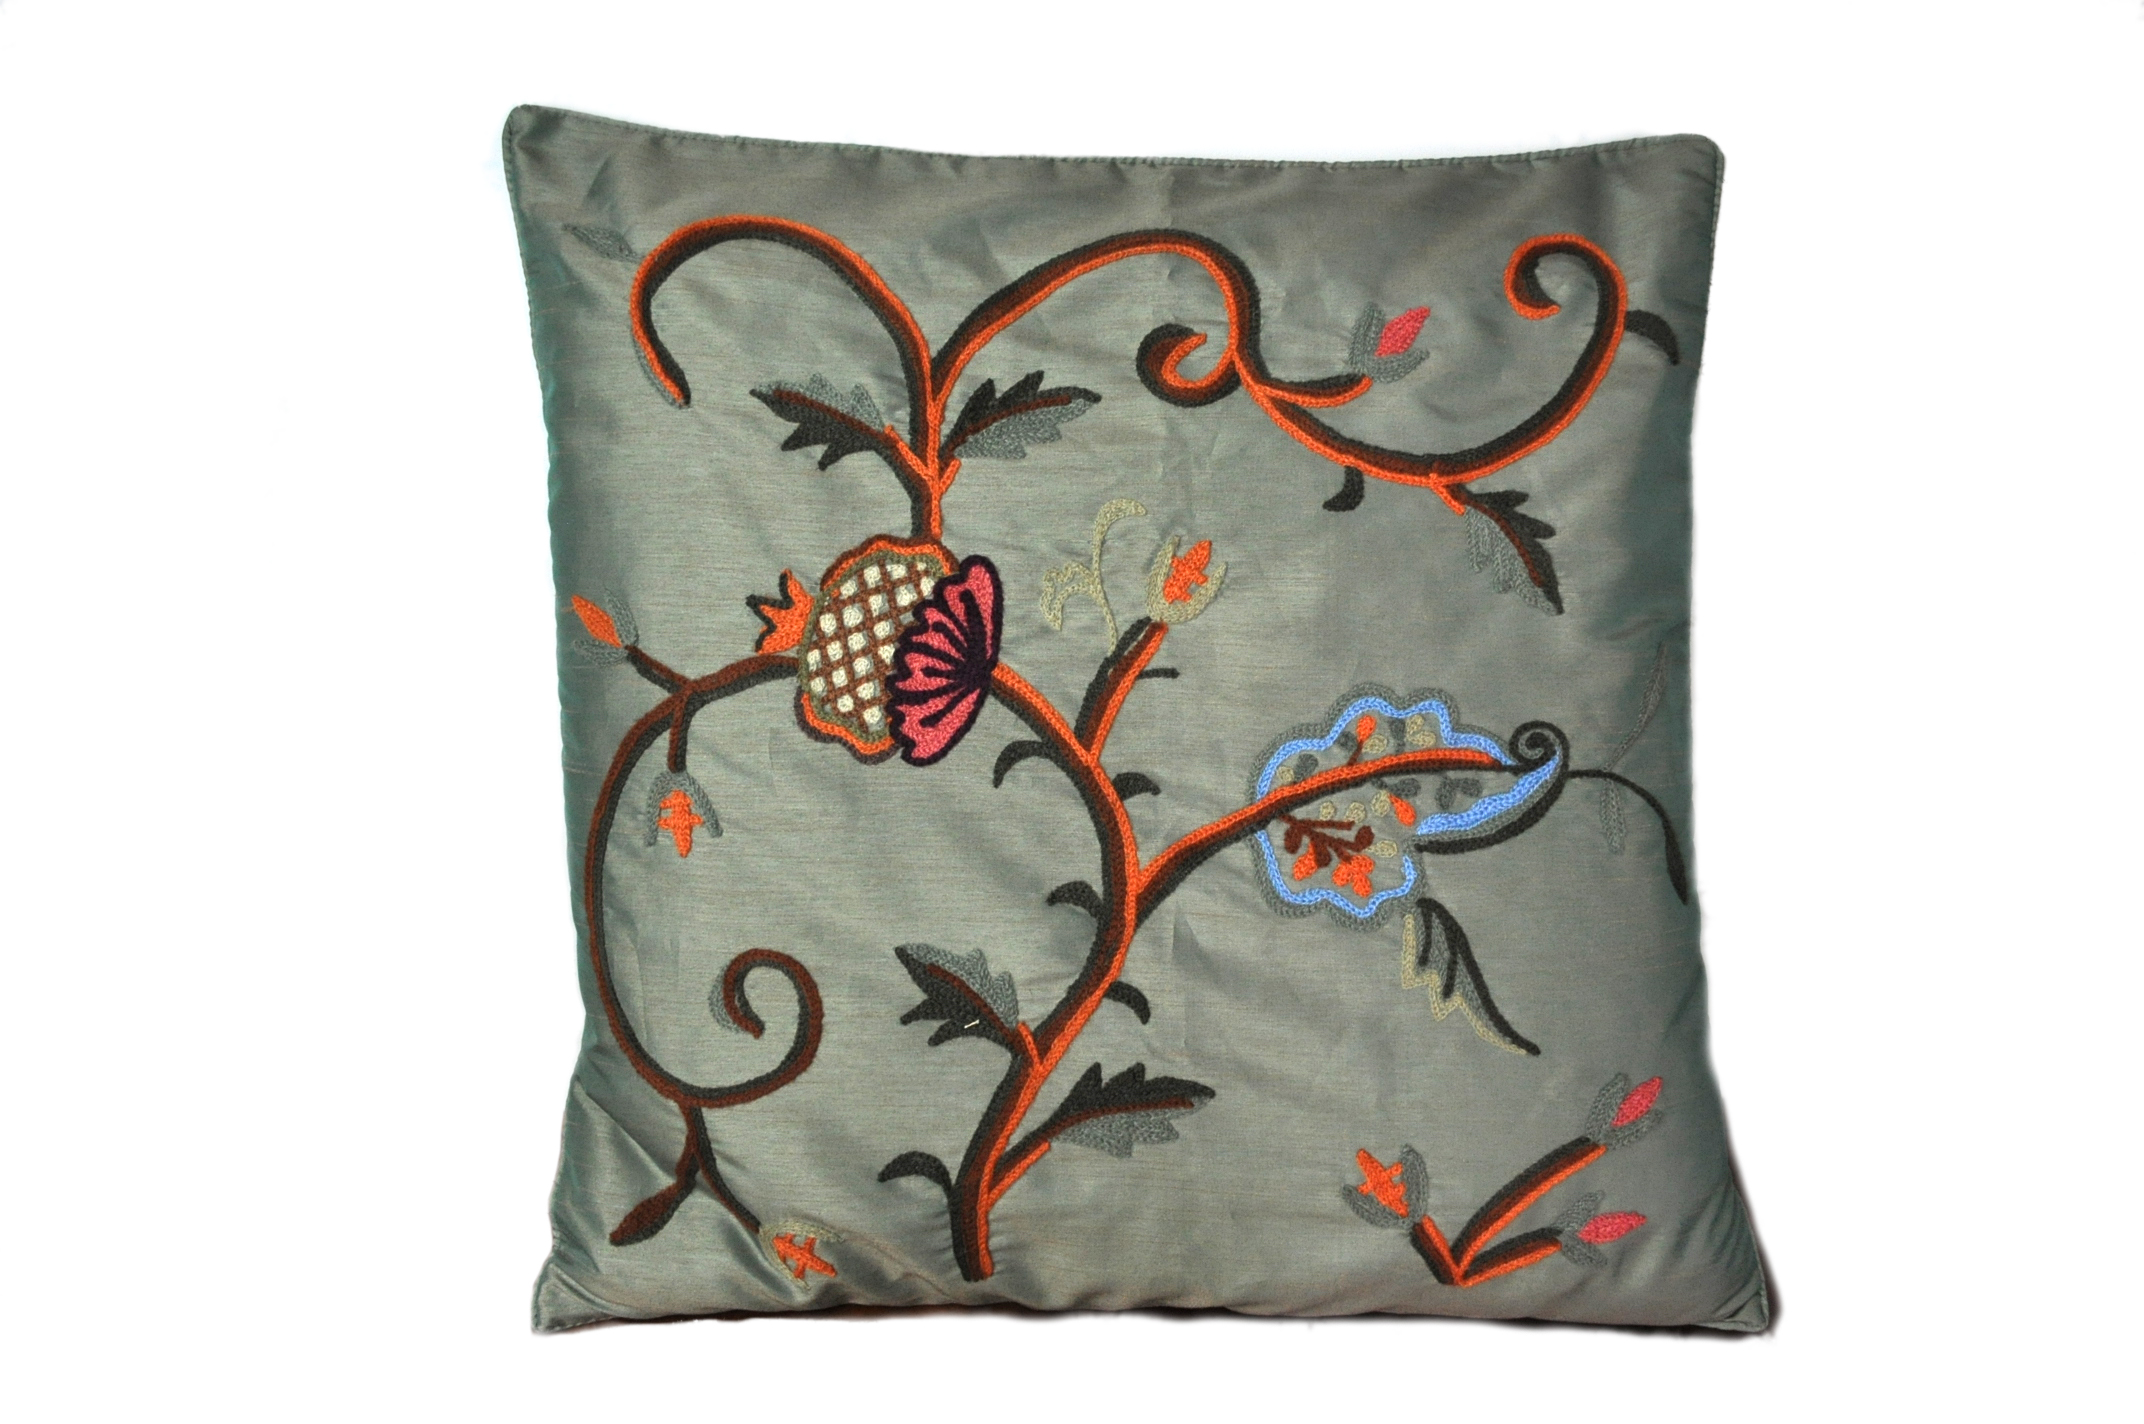 18×18 Floral Decorative Pillow Cushion Cover